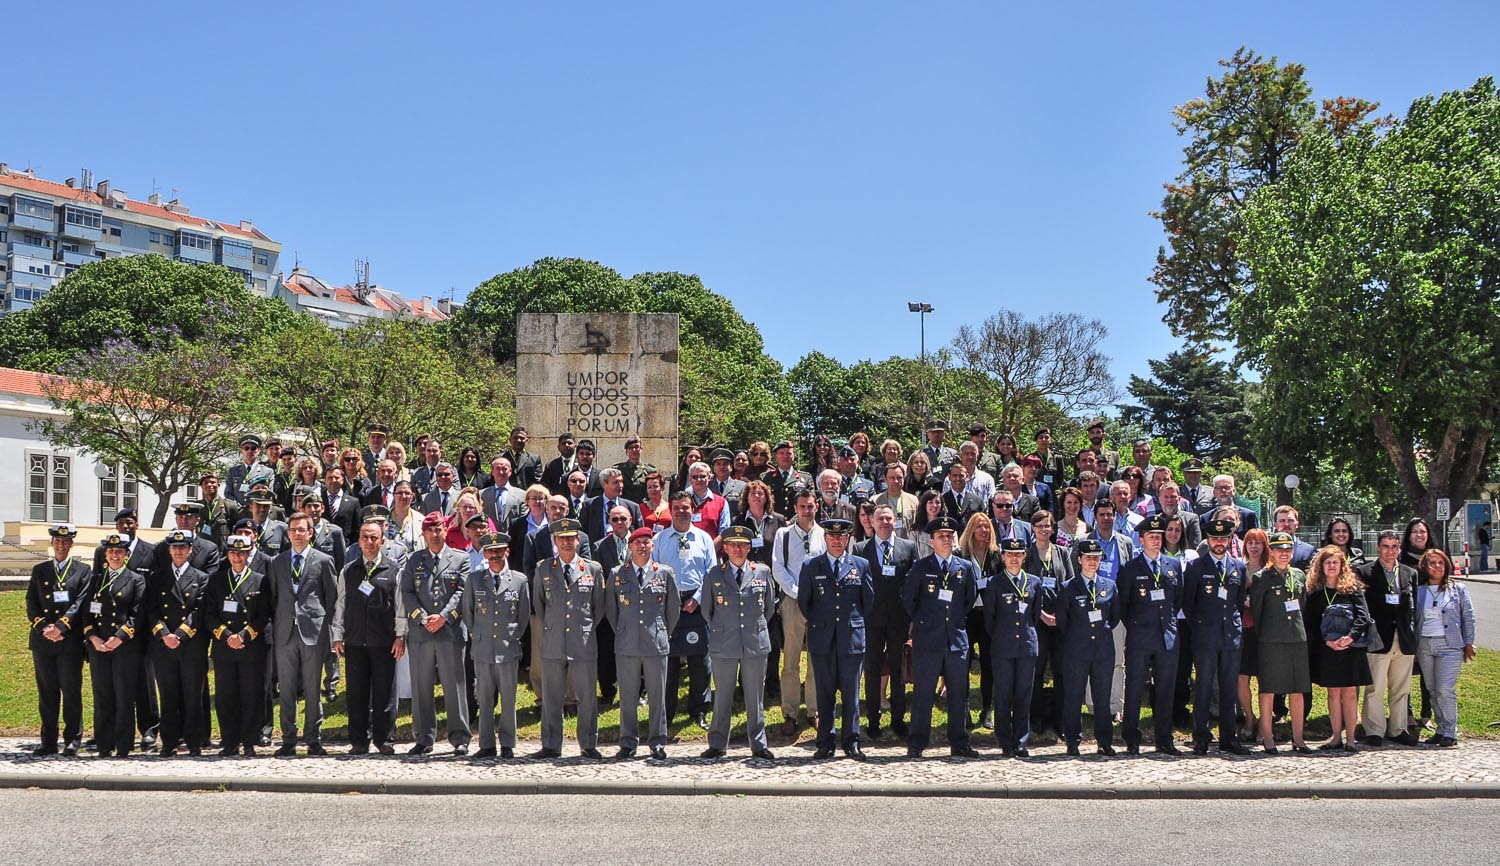 IAMPS 2015 Group Photo